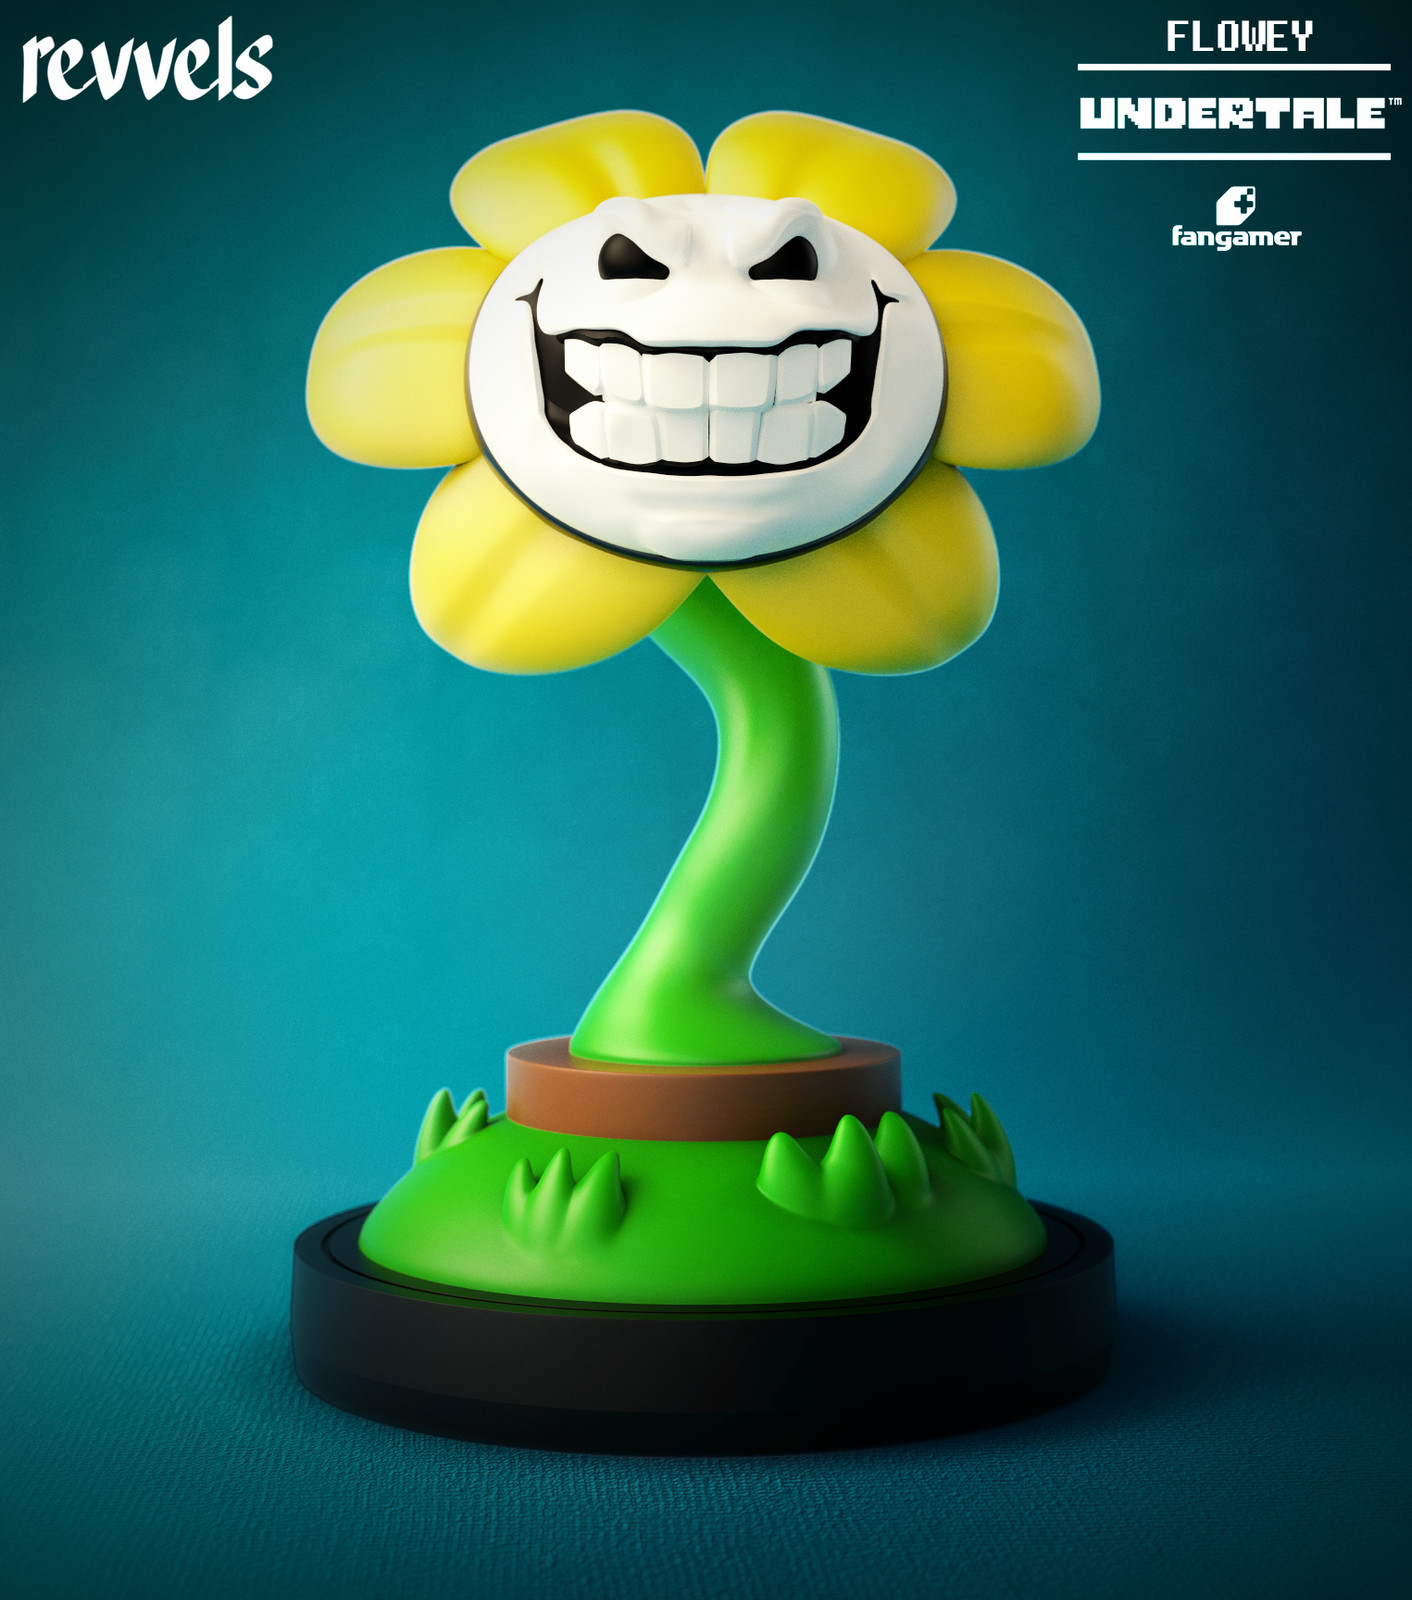 One of the 6 interchangeable faces that comes with the figure :)